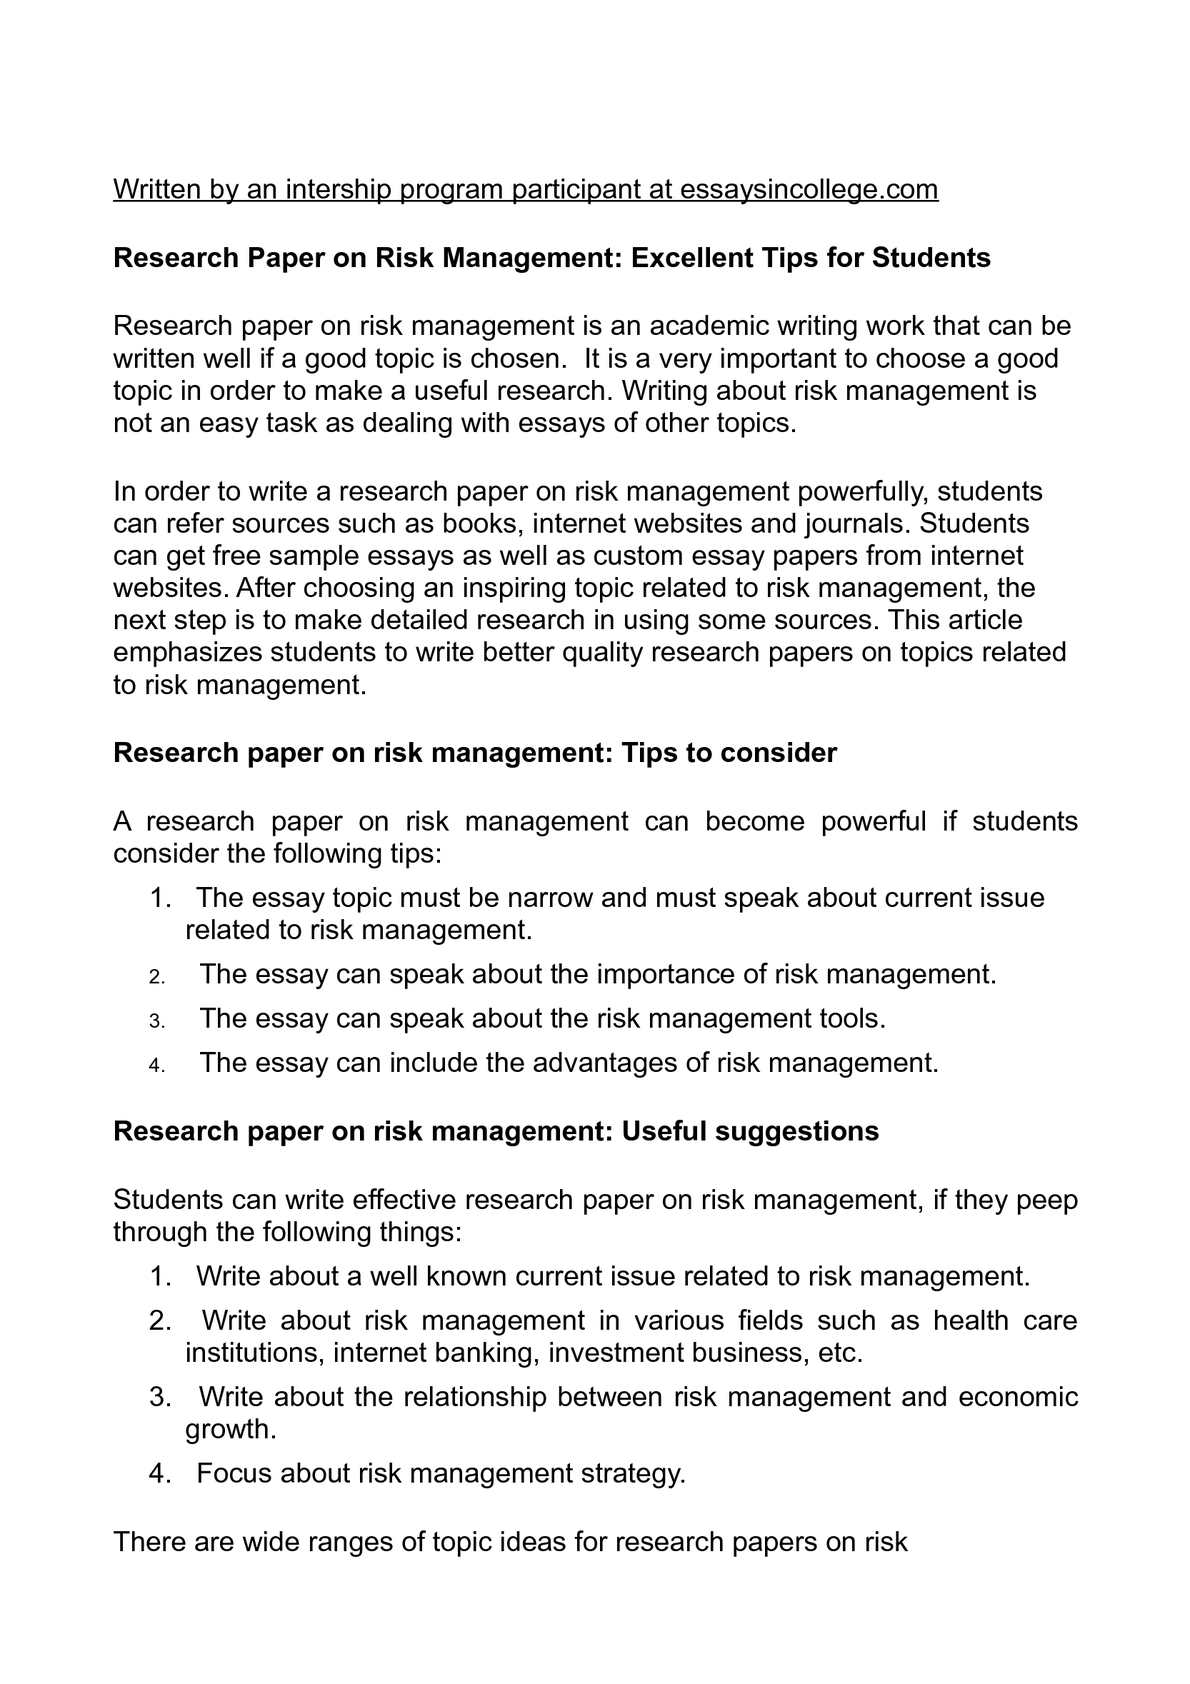 003 Health Topics To Write Research Paper On Breathtaking A Full